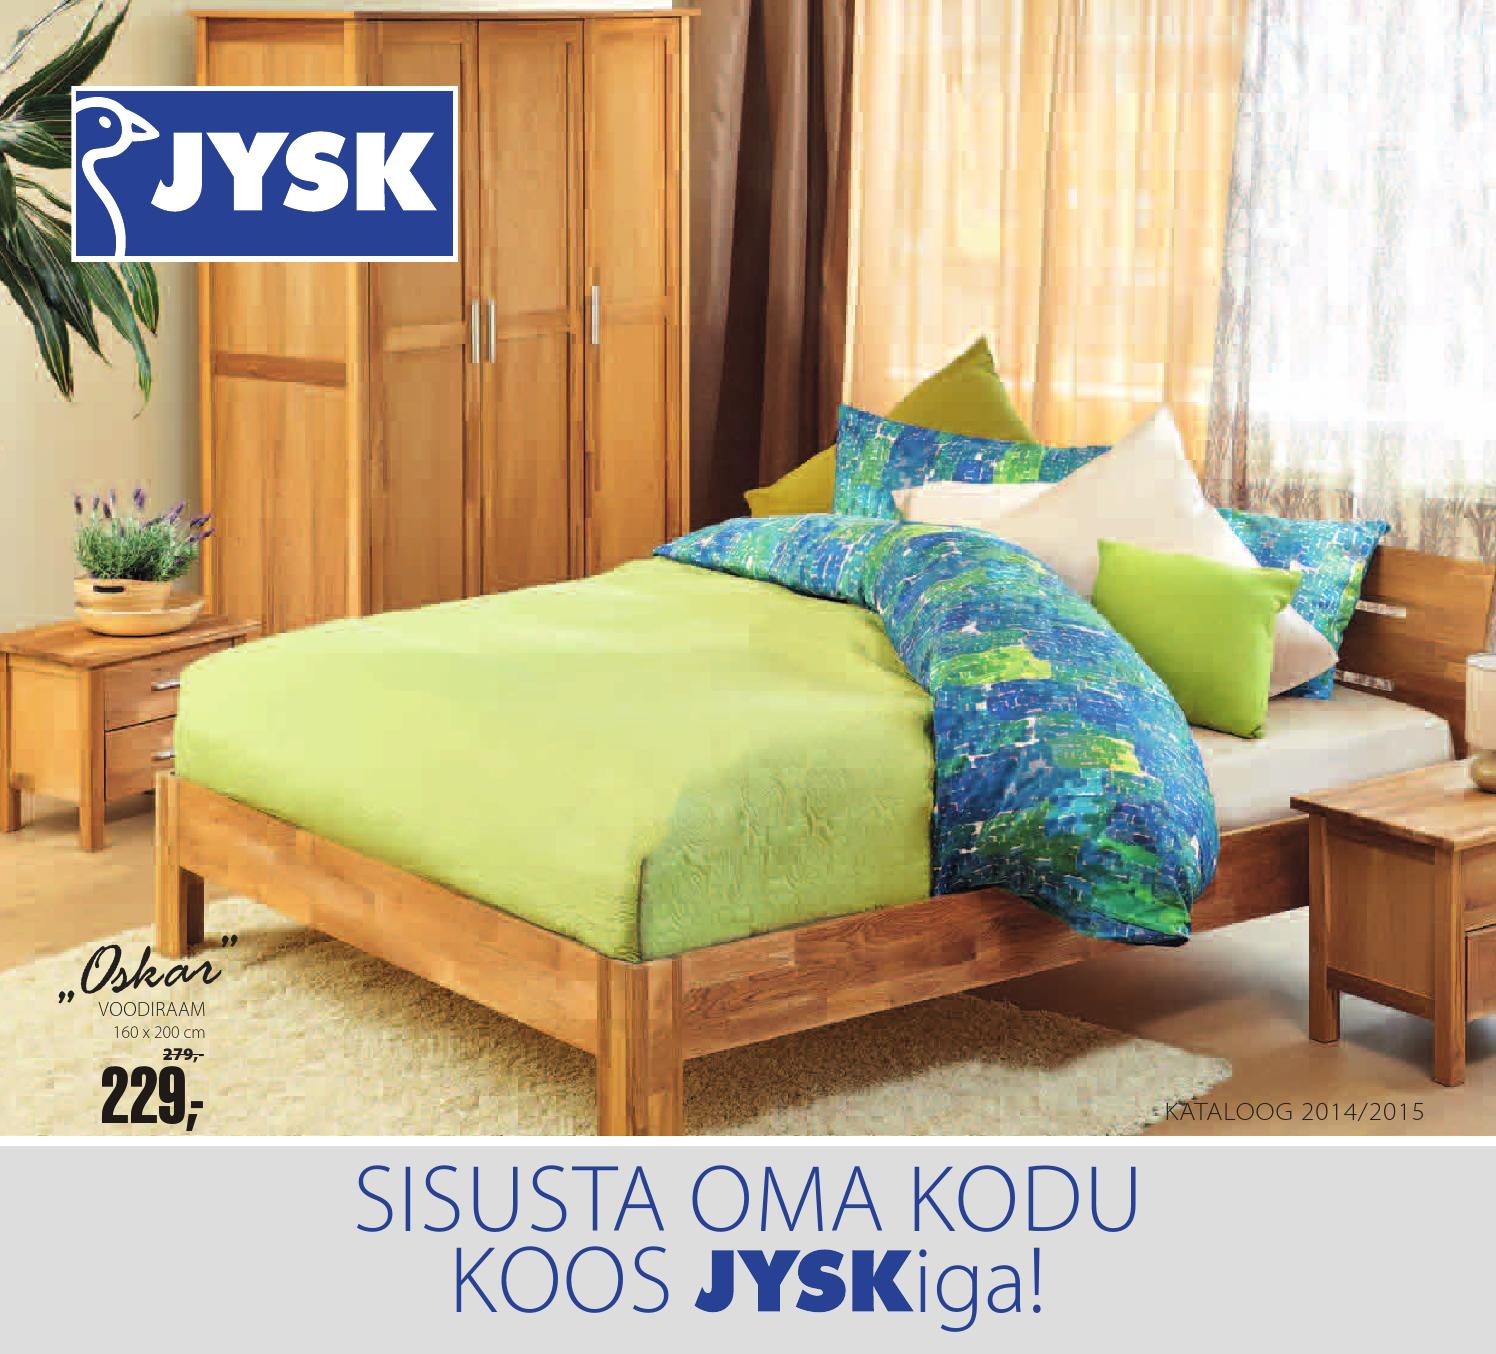 Jysk Furniture Catalogue 2014 2015 Estonia By Page 1 Issuu